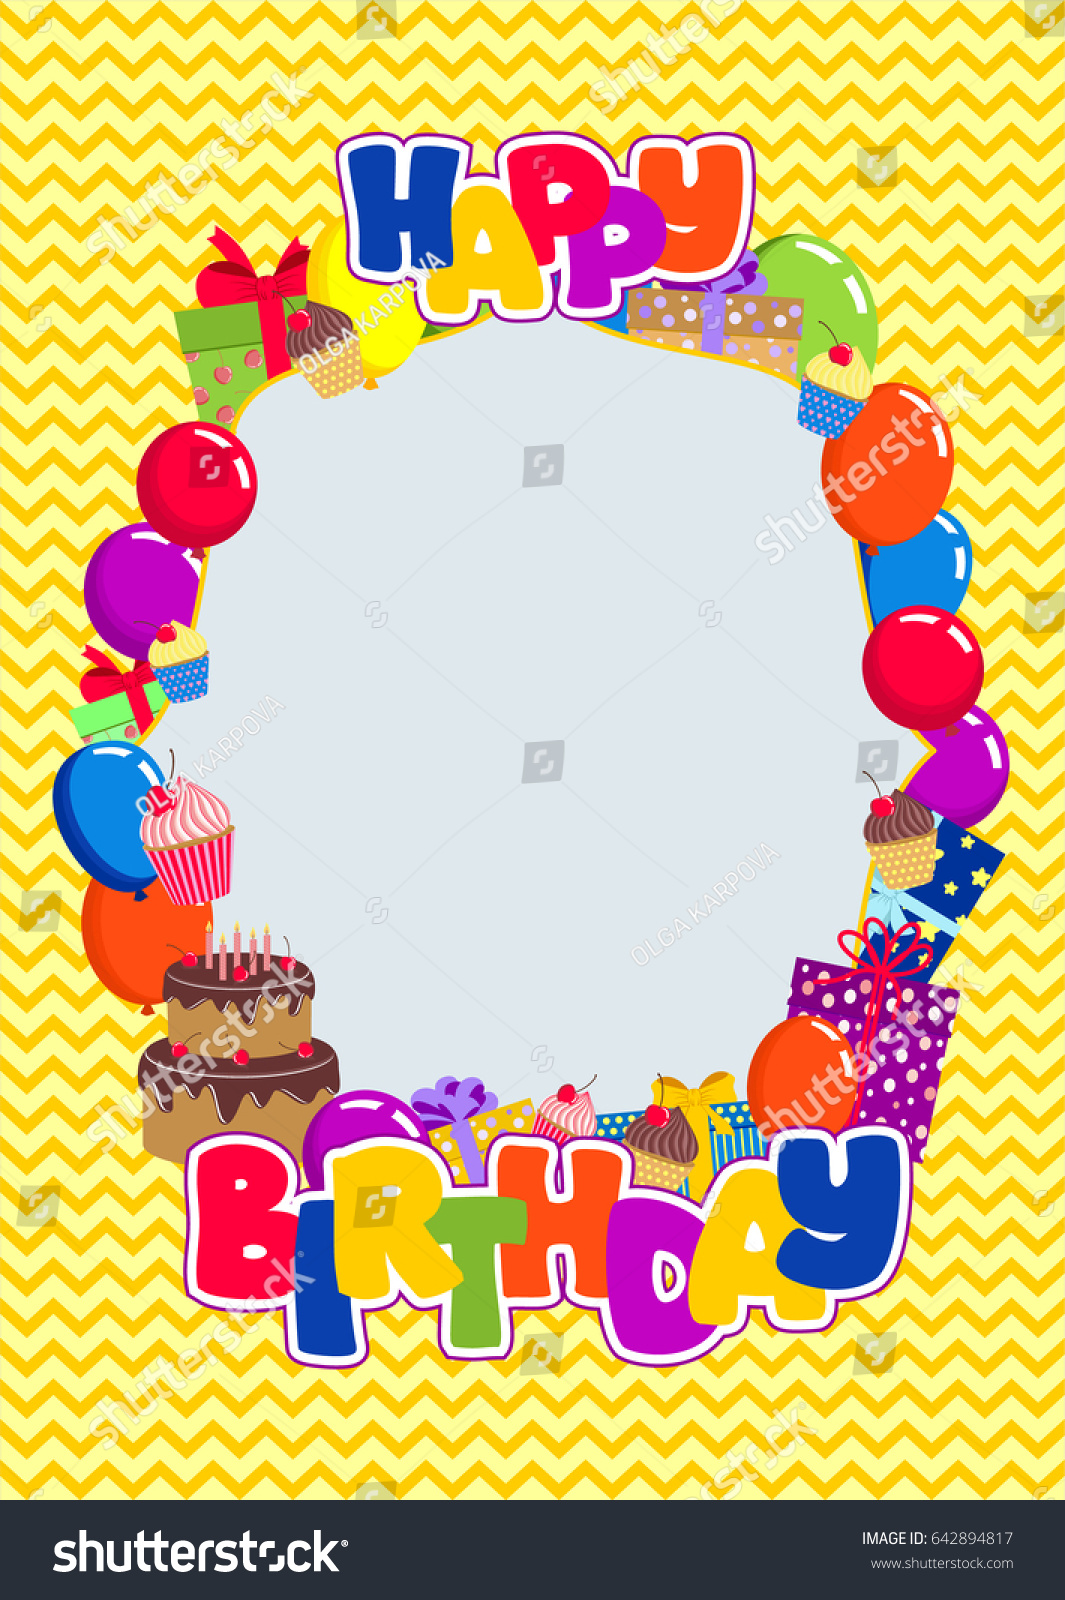 Vector Frame With Lettering Happy Birthday Balloons Gift Boxes Cake Cupcakes On Chevron Pattern In Bright Colors